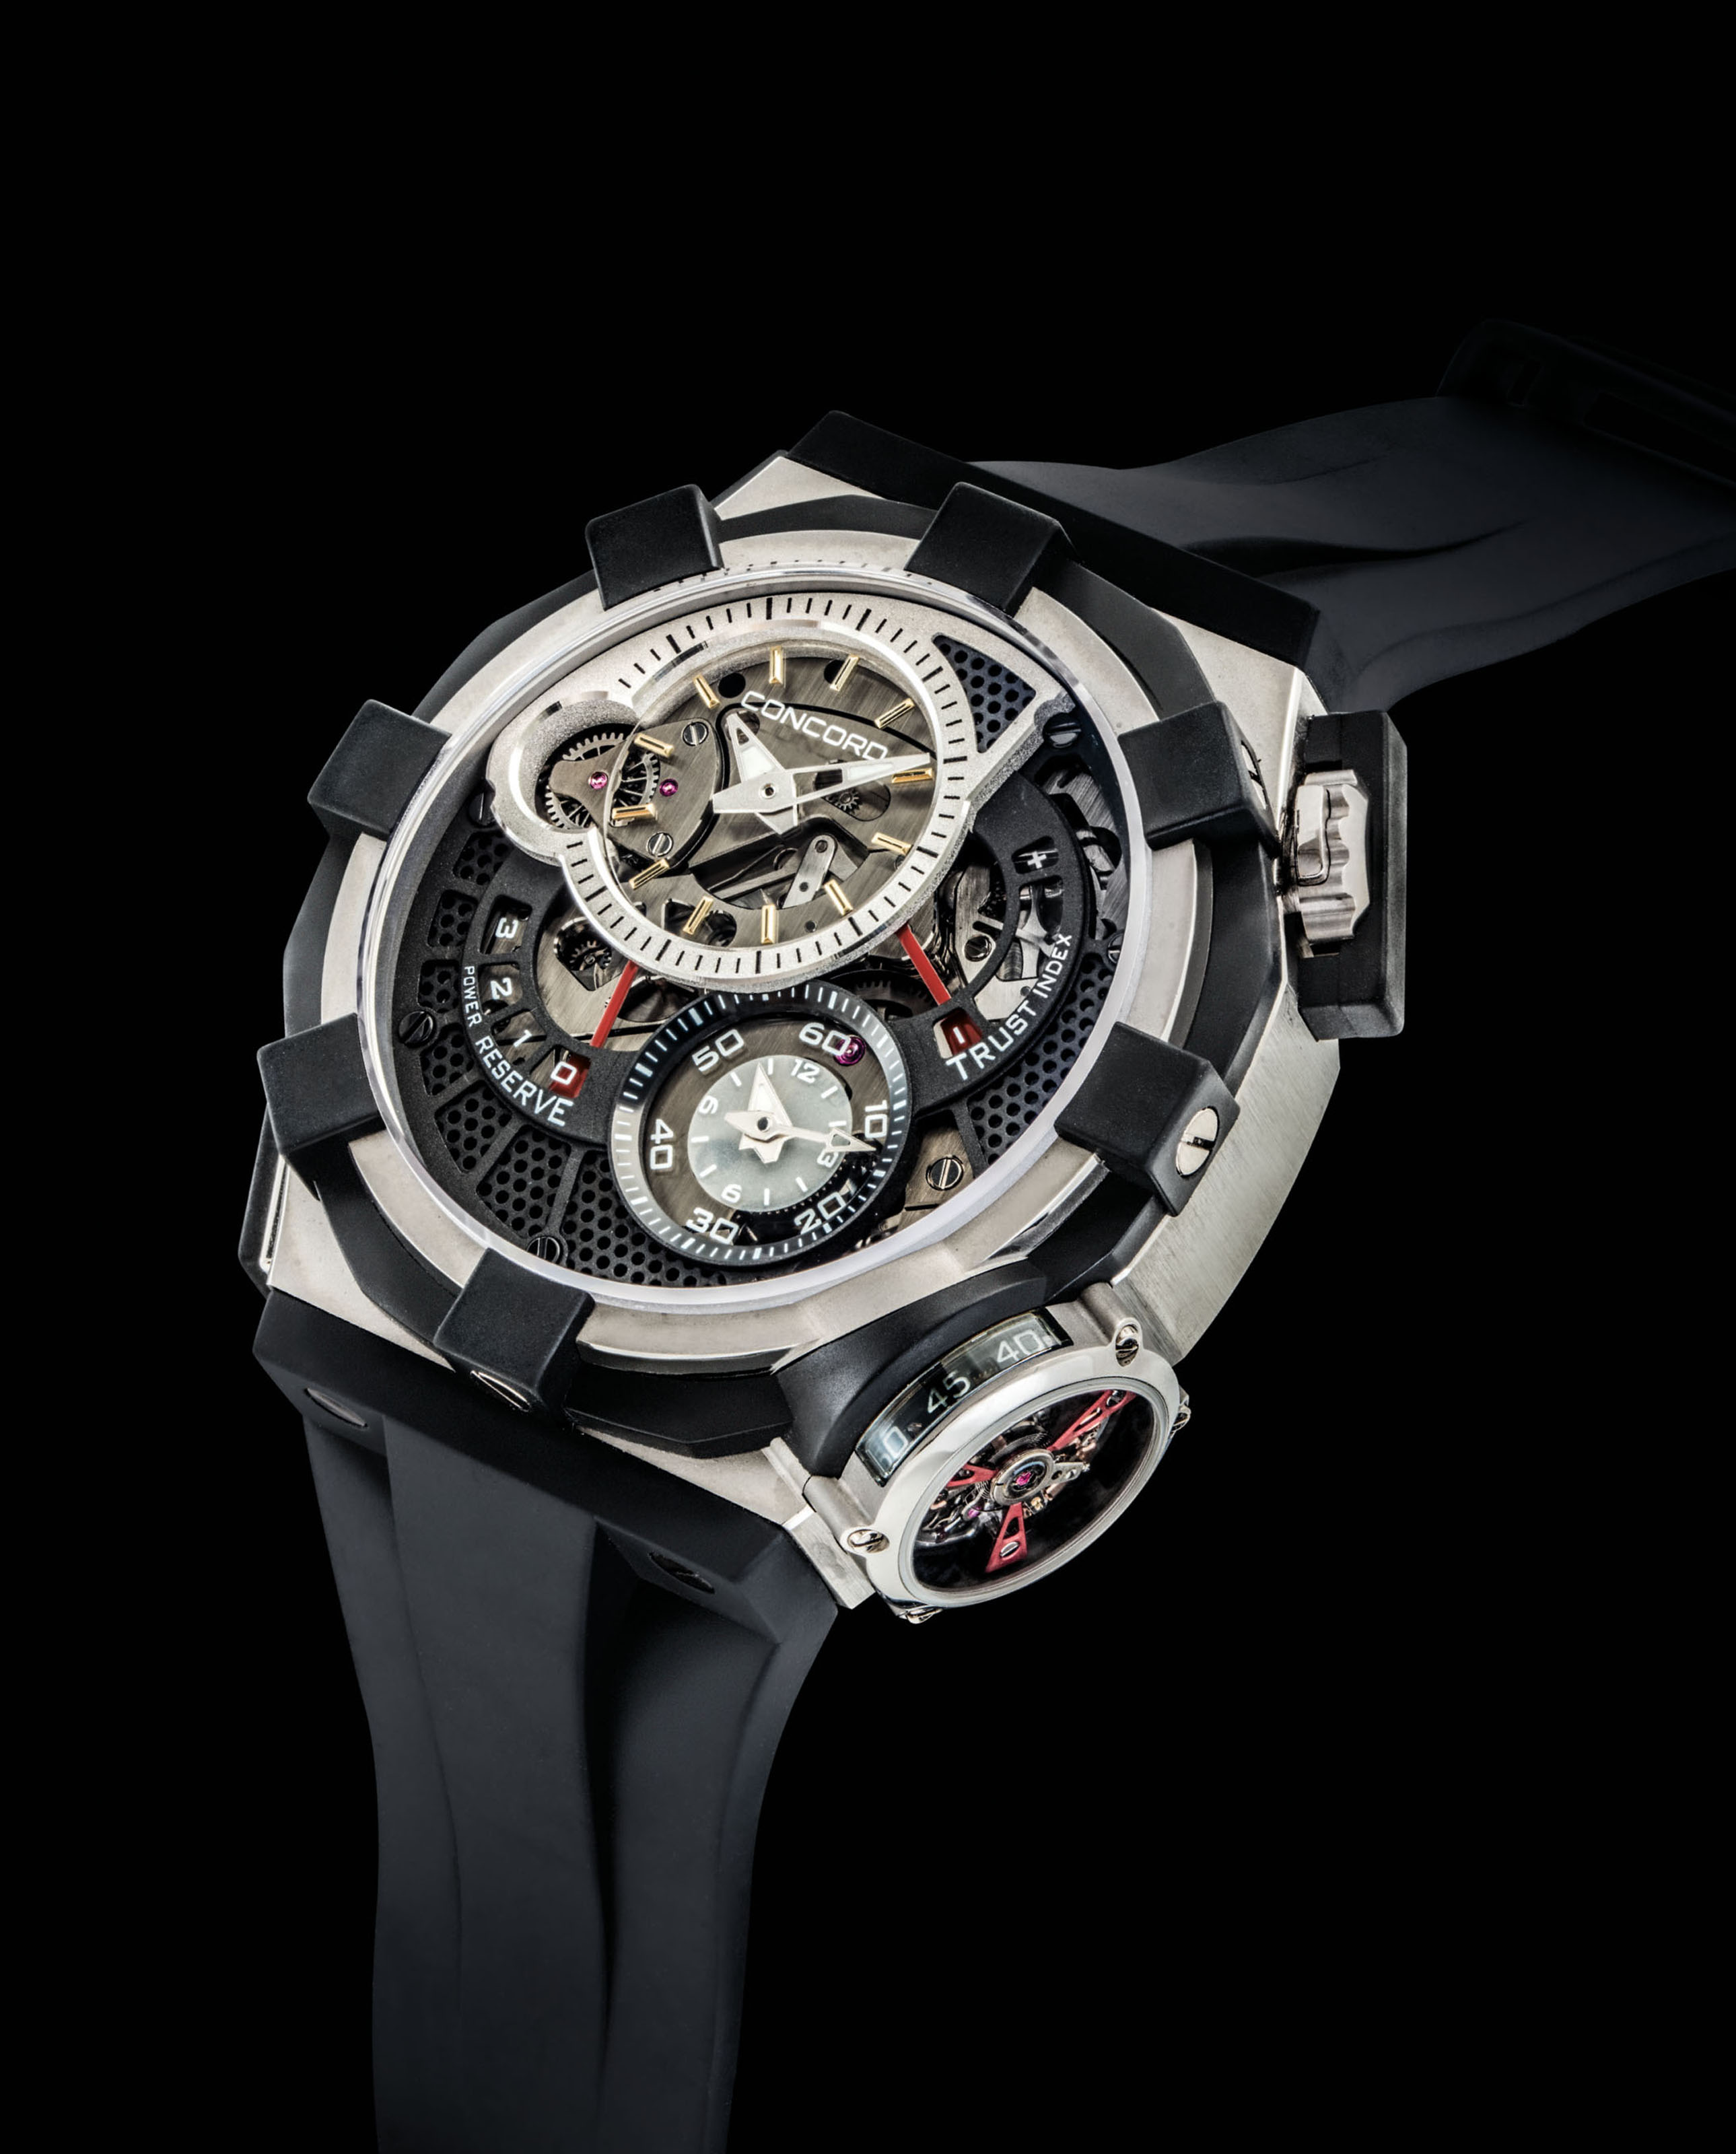 CONCORD. A FINE AND OVERSIZED STAINLESS STEEL AND RUBBER LIMITED EDITION SEMI-SKELETONISED FLYBACK CHRONOGRAPH TOURBILLON WRISTWATCH WITH POWER RESERVE AND TRUST INDEX INDICATION